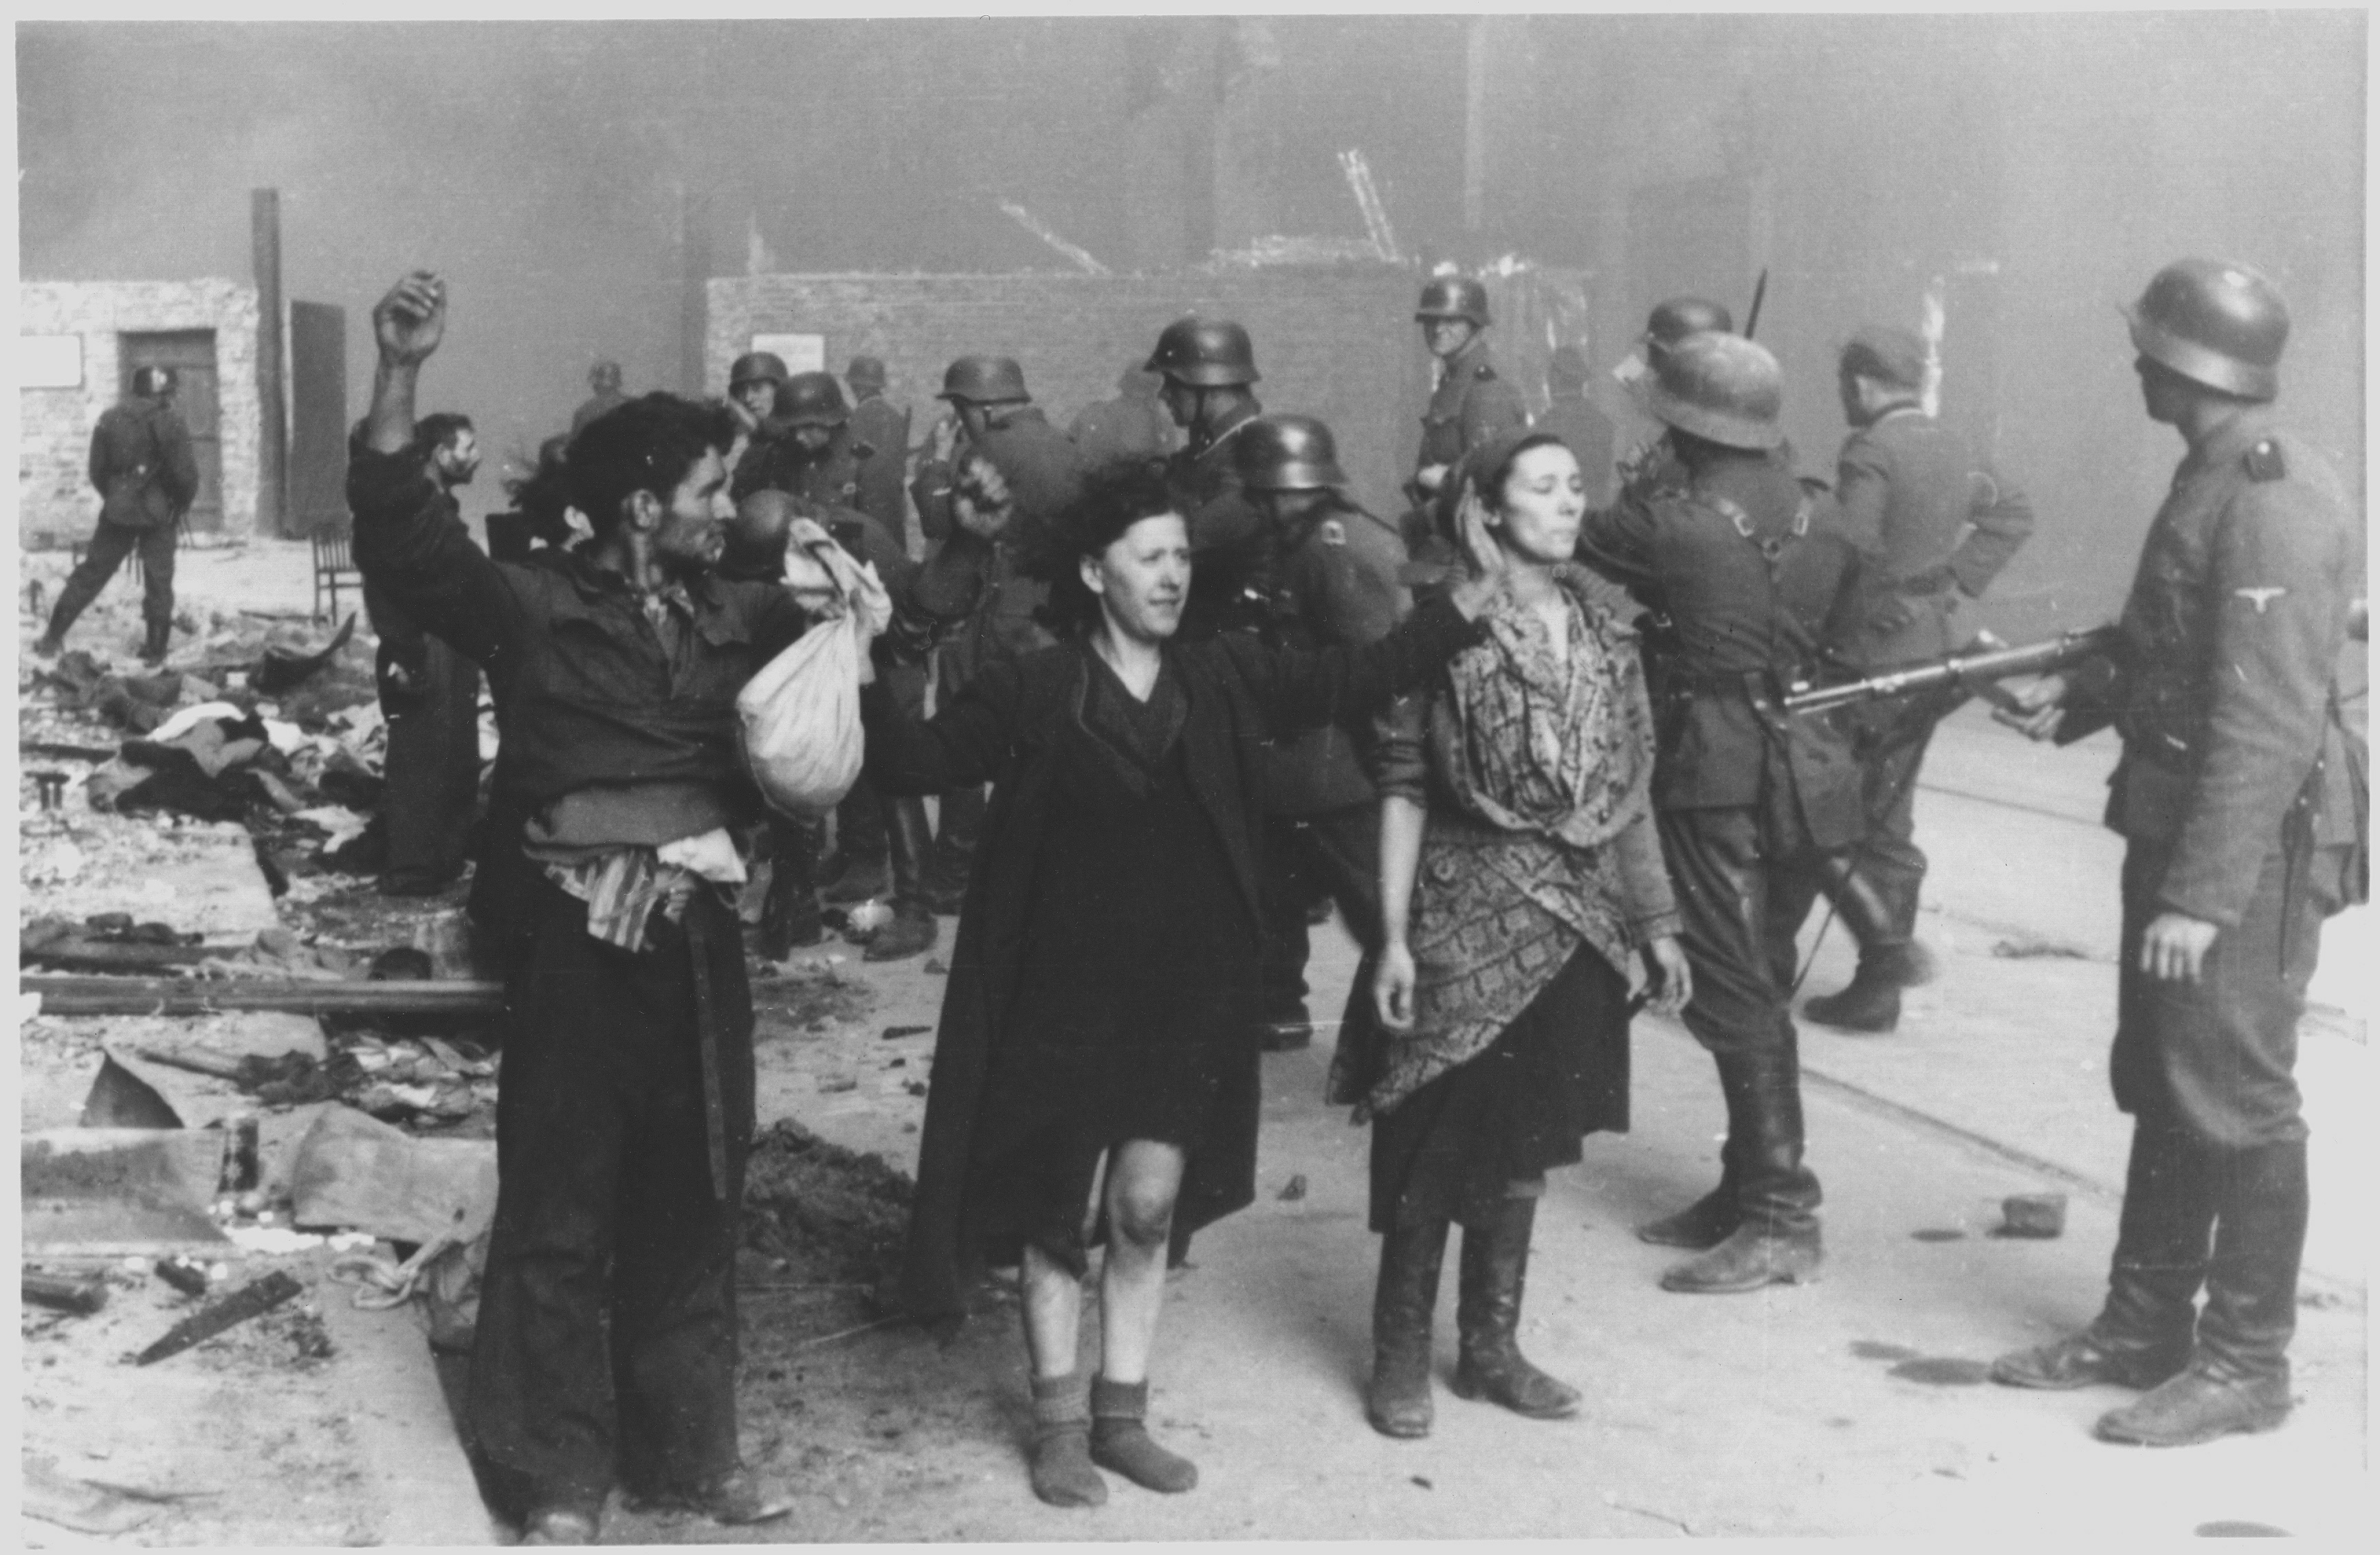 Stroop_Report_-_Warsaw_Ghetto_Uprising_08.jpg